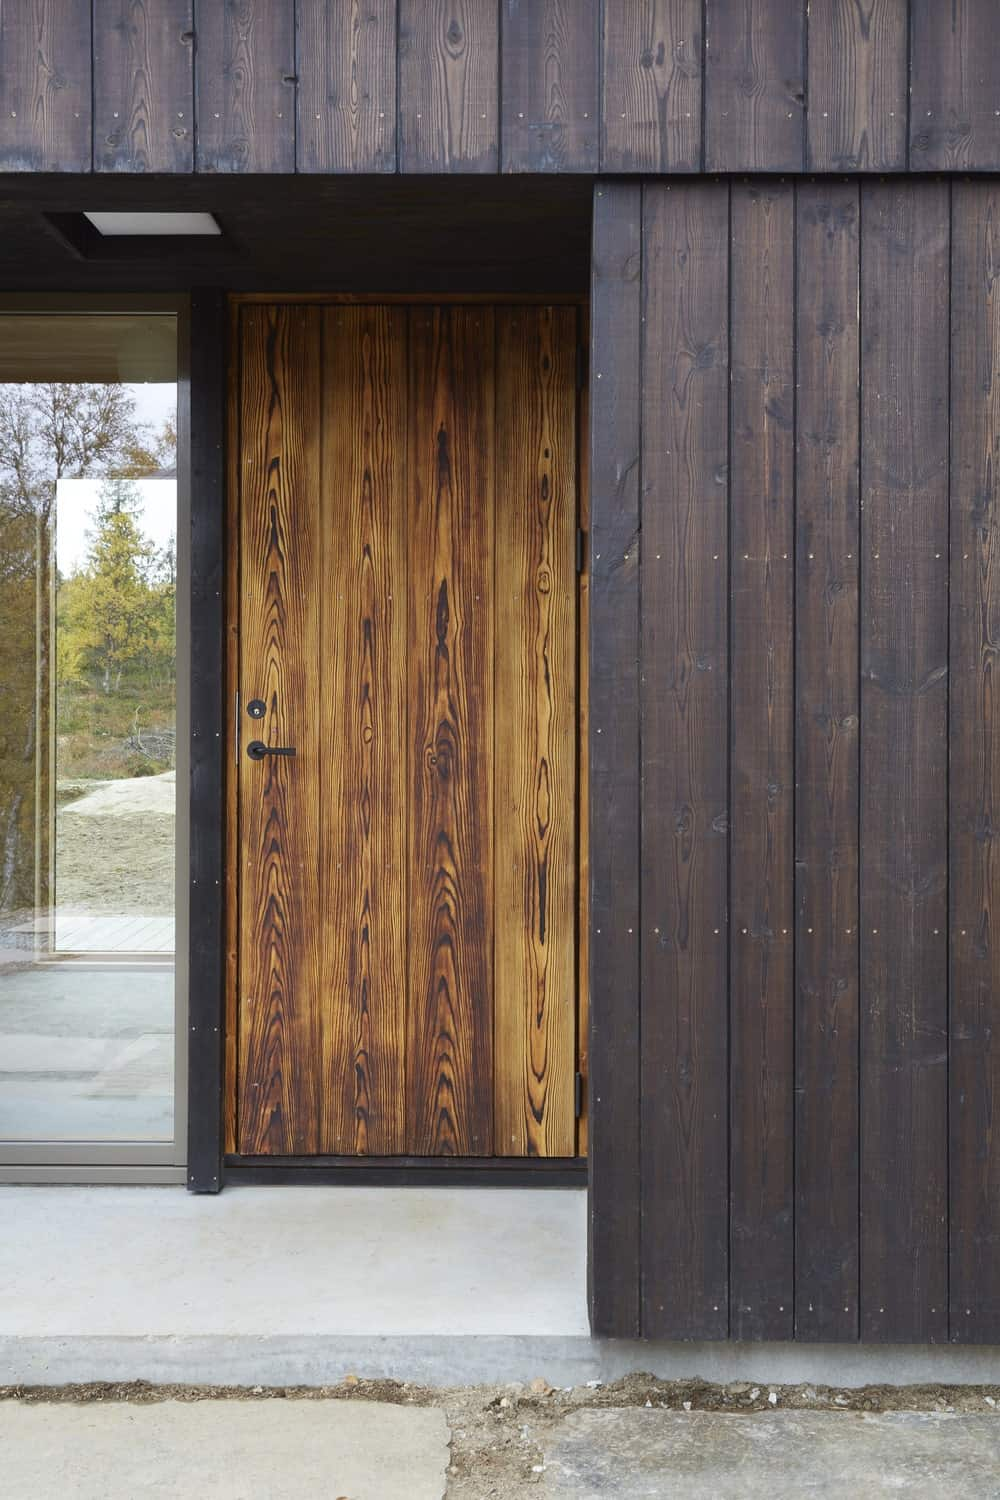 This is a close look at the main door of the house with a slightly lighter tone and a large glass panel on its side to let in natural lighting.